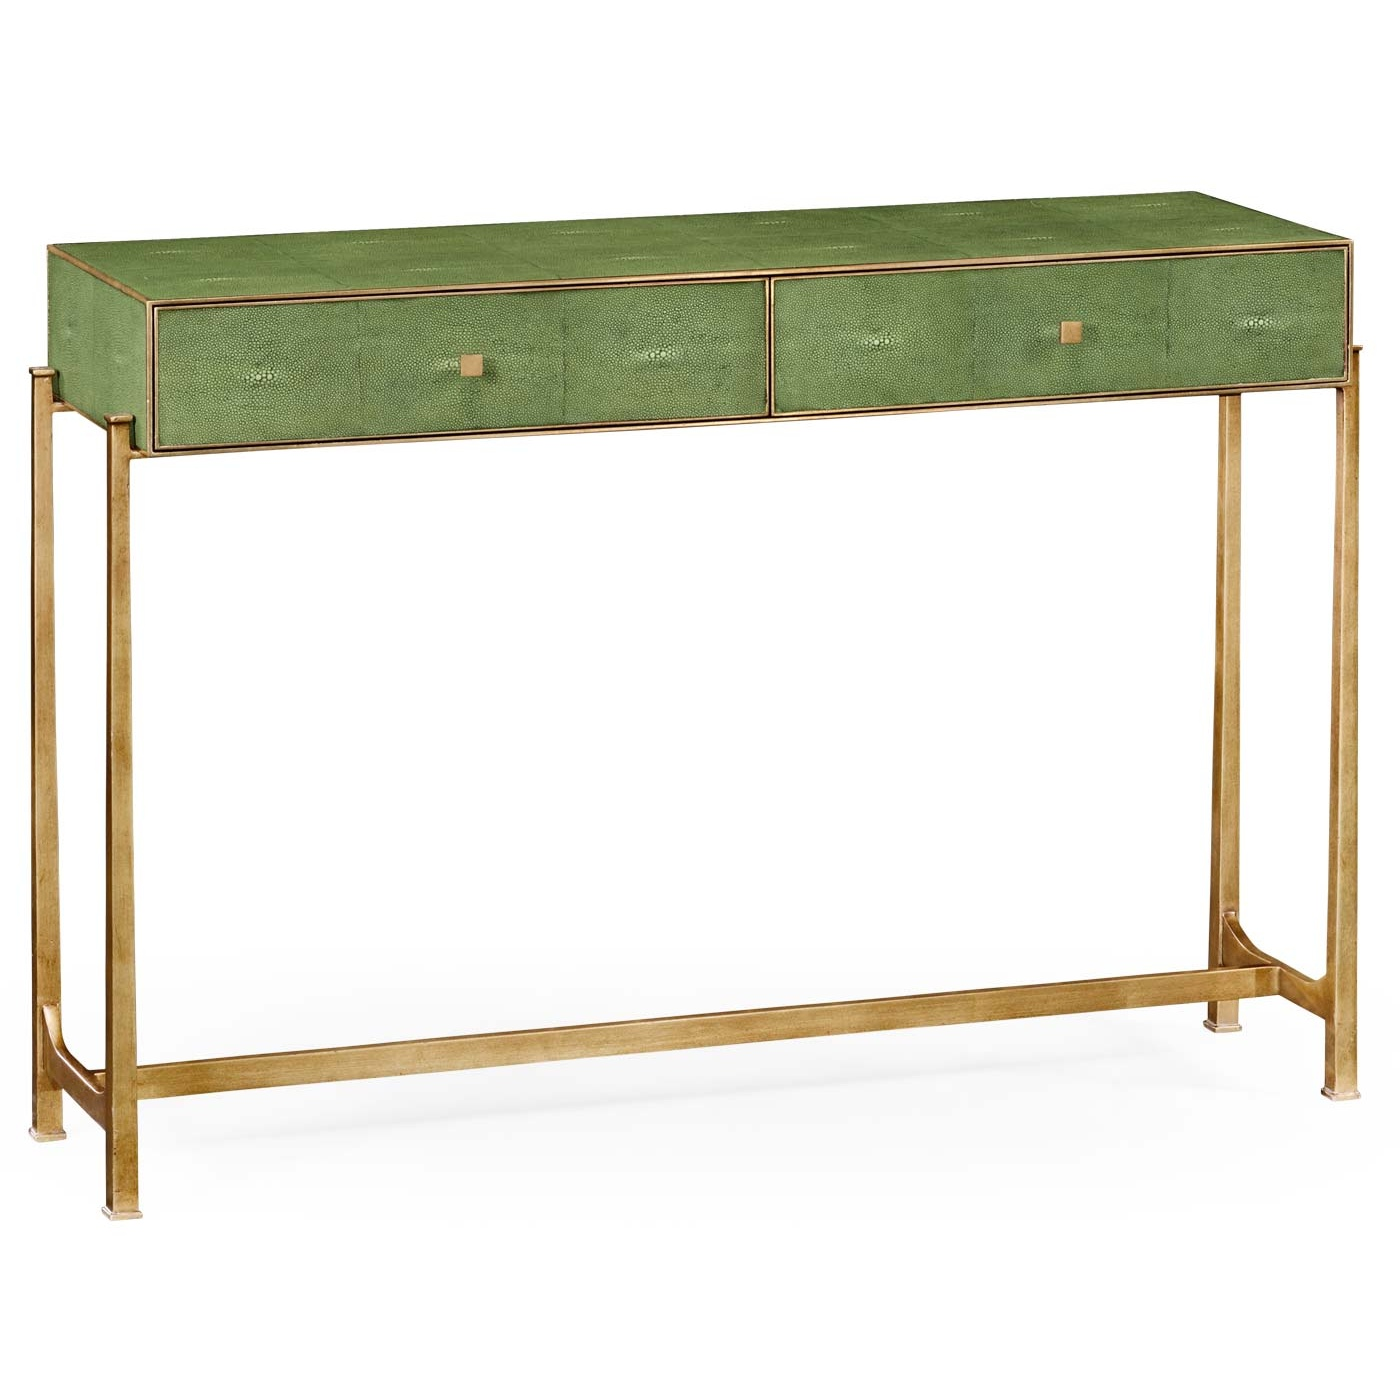 green console table onedekalb for art deco leather swanky interiors designs target hafley accent architecture concrete outdoor bunnings folding nic dimmable lamp mosaic outside